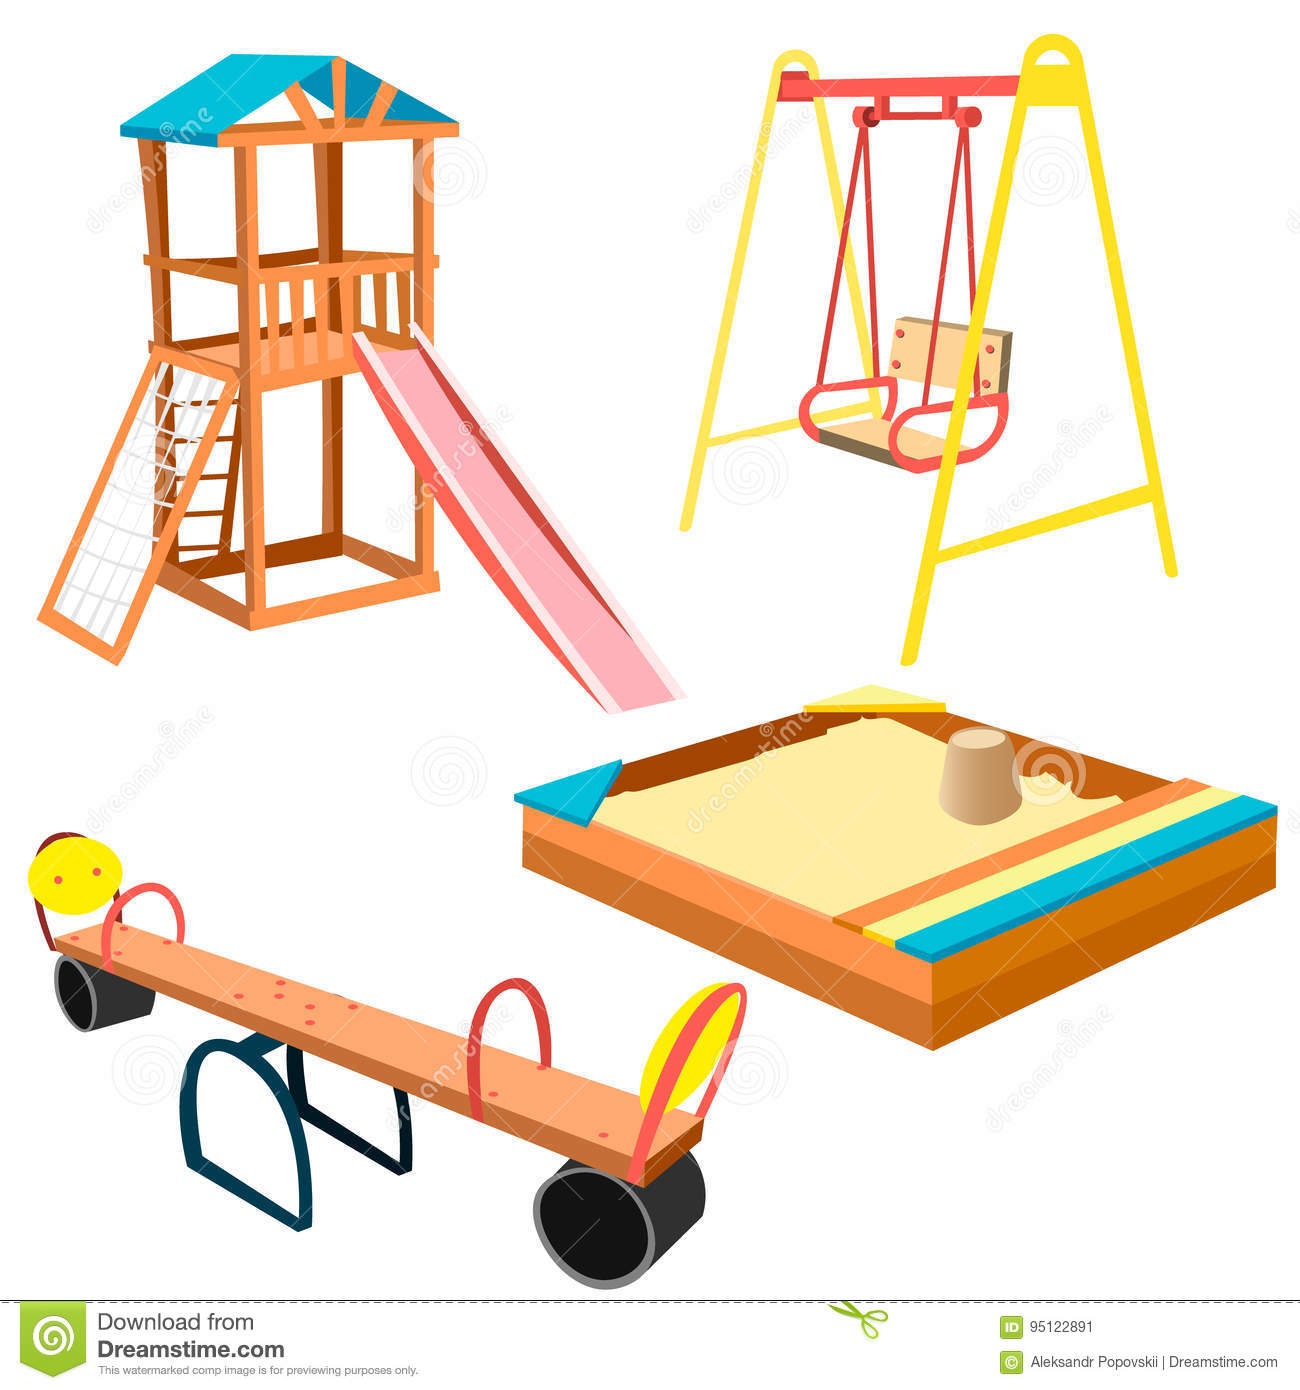 Kids Playground Equipment With Swings And Slides Stock